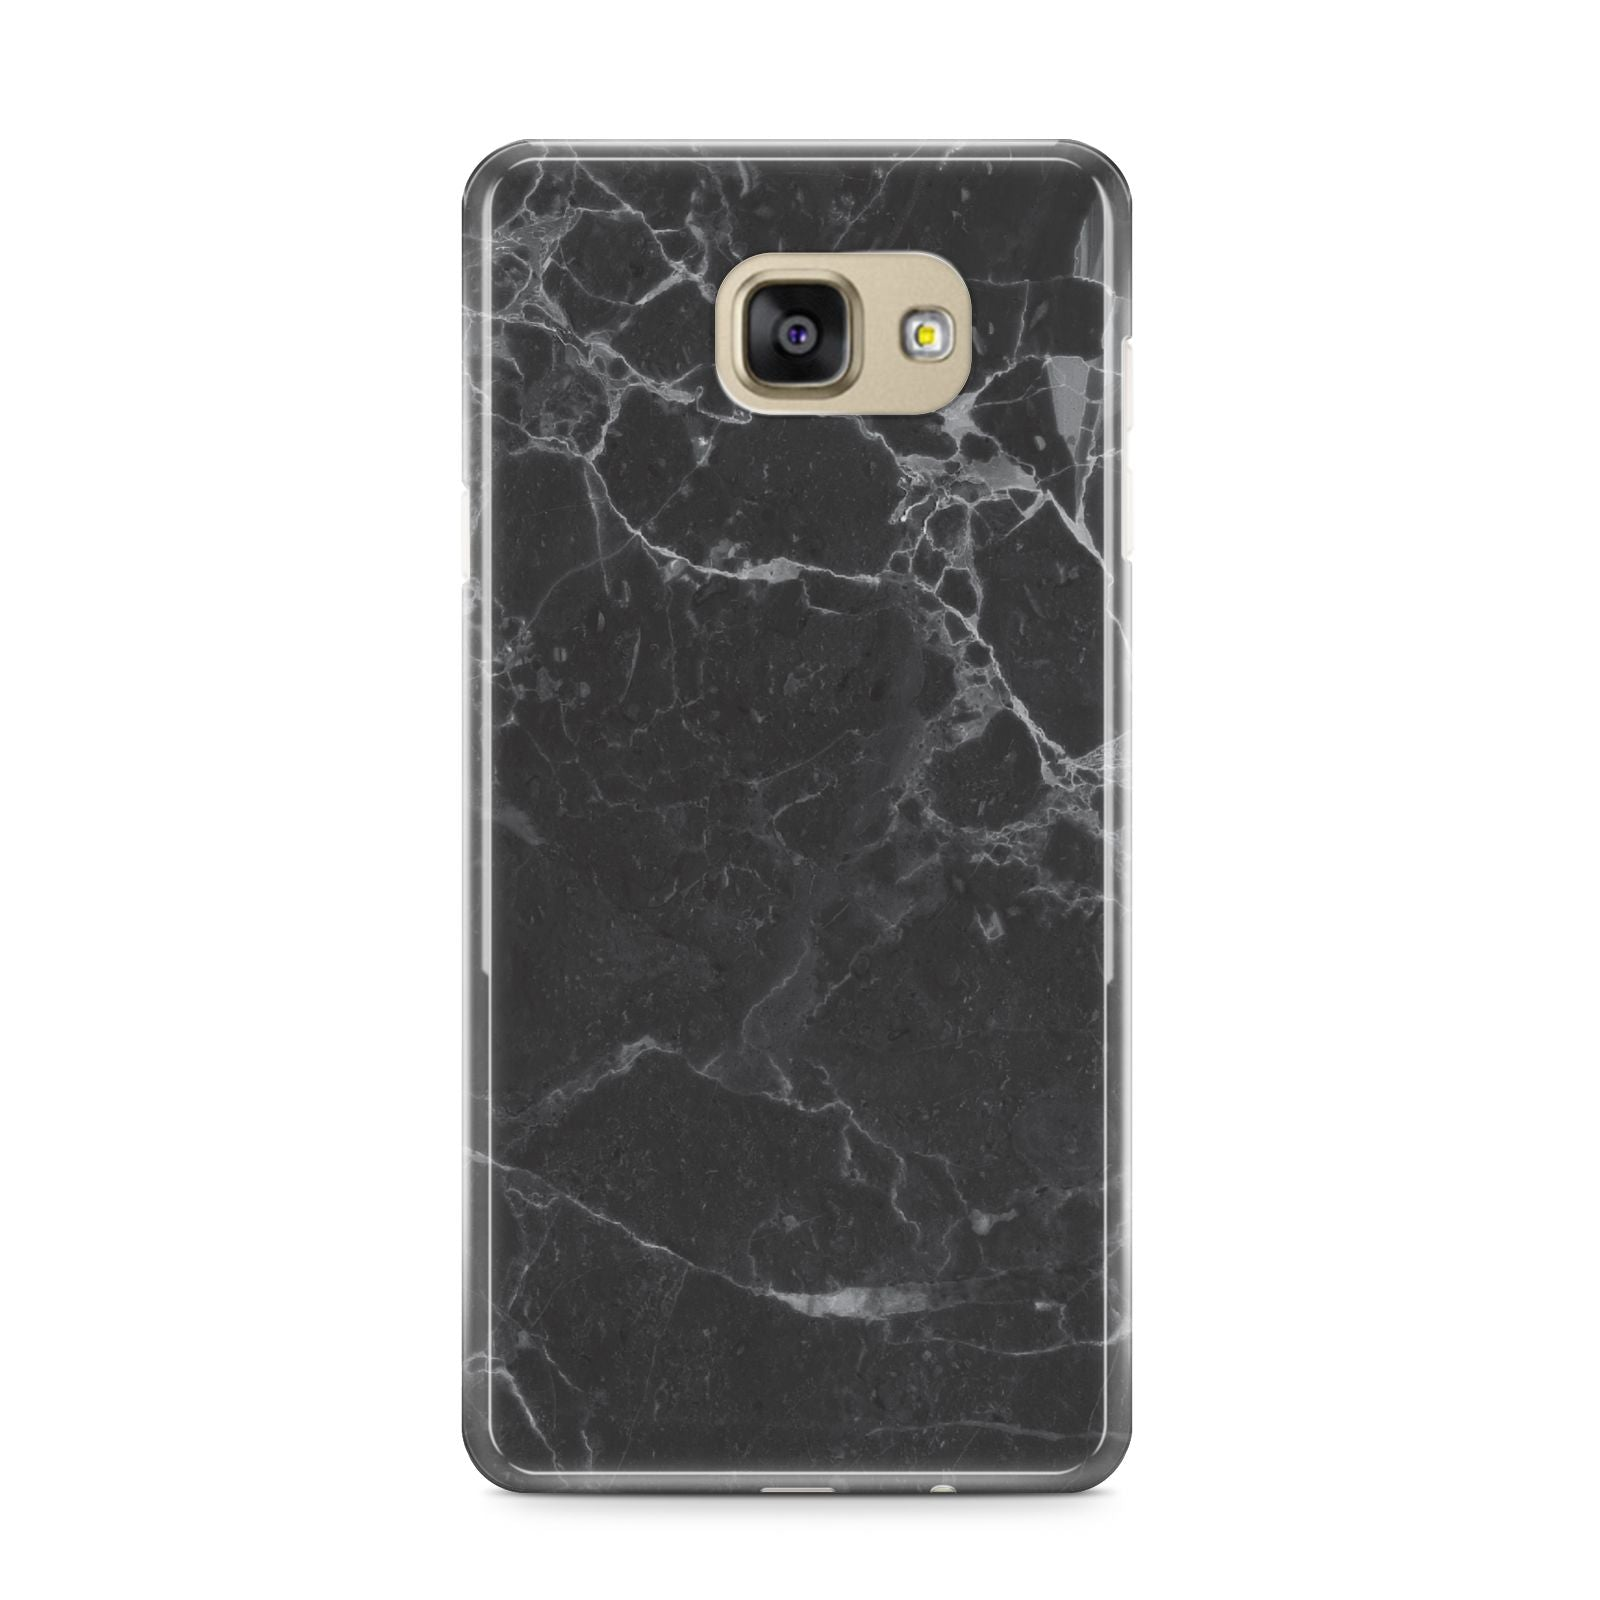 Faux Marble Effect Black Samsung Galaxy A9 2016 Case on gold phone